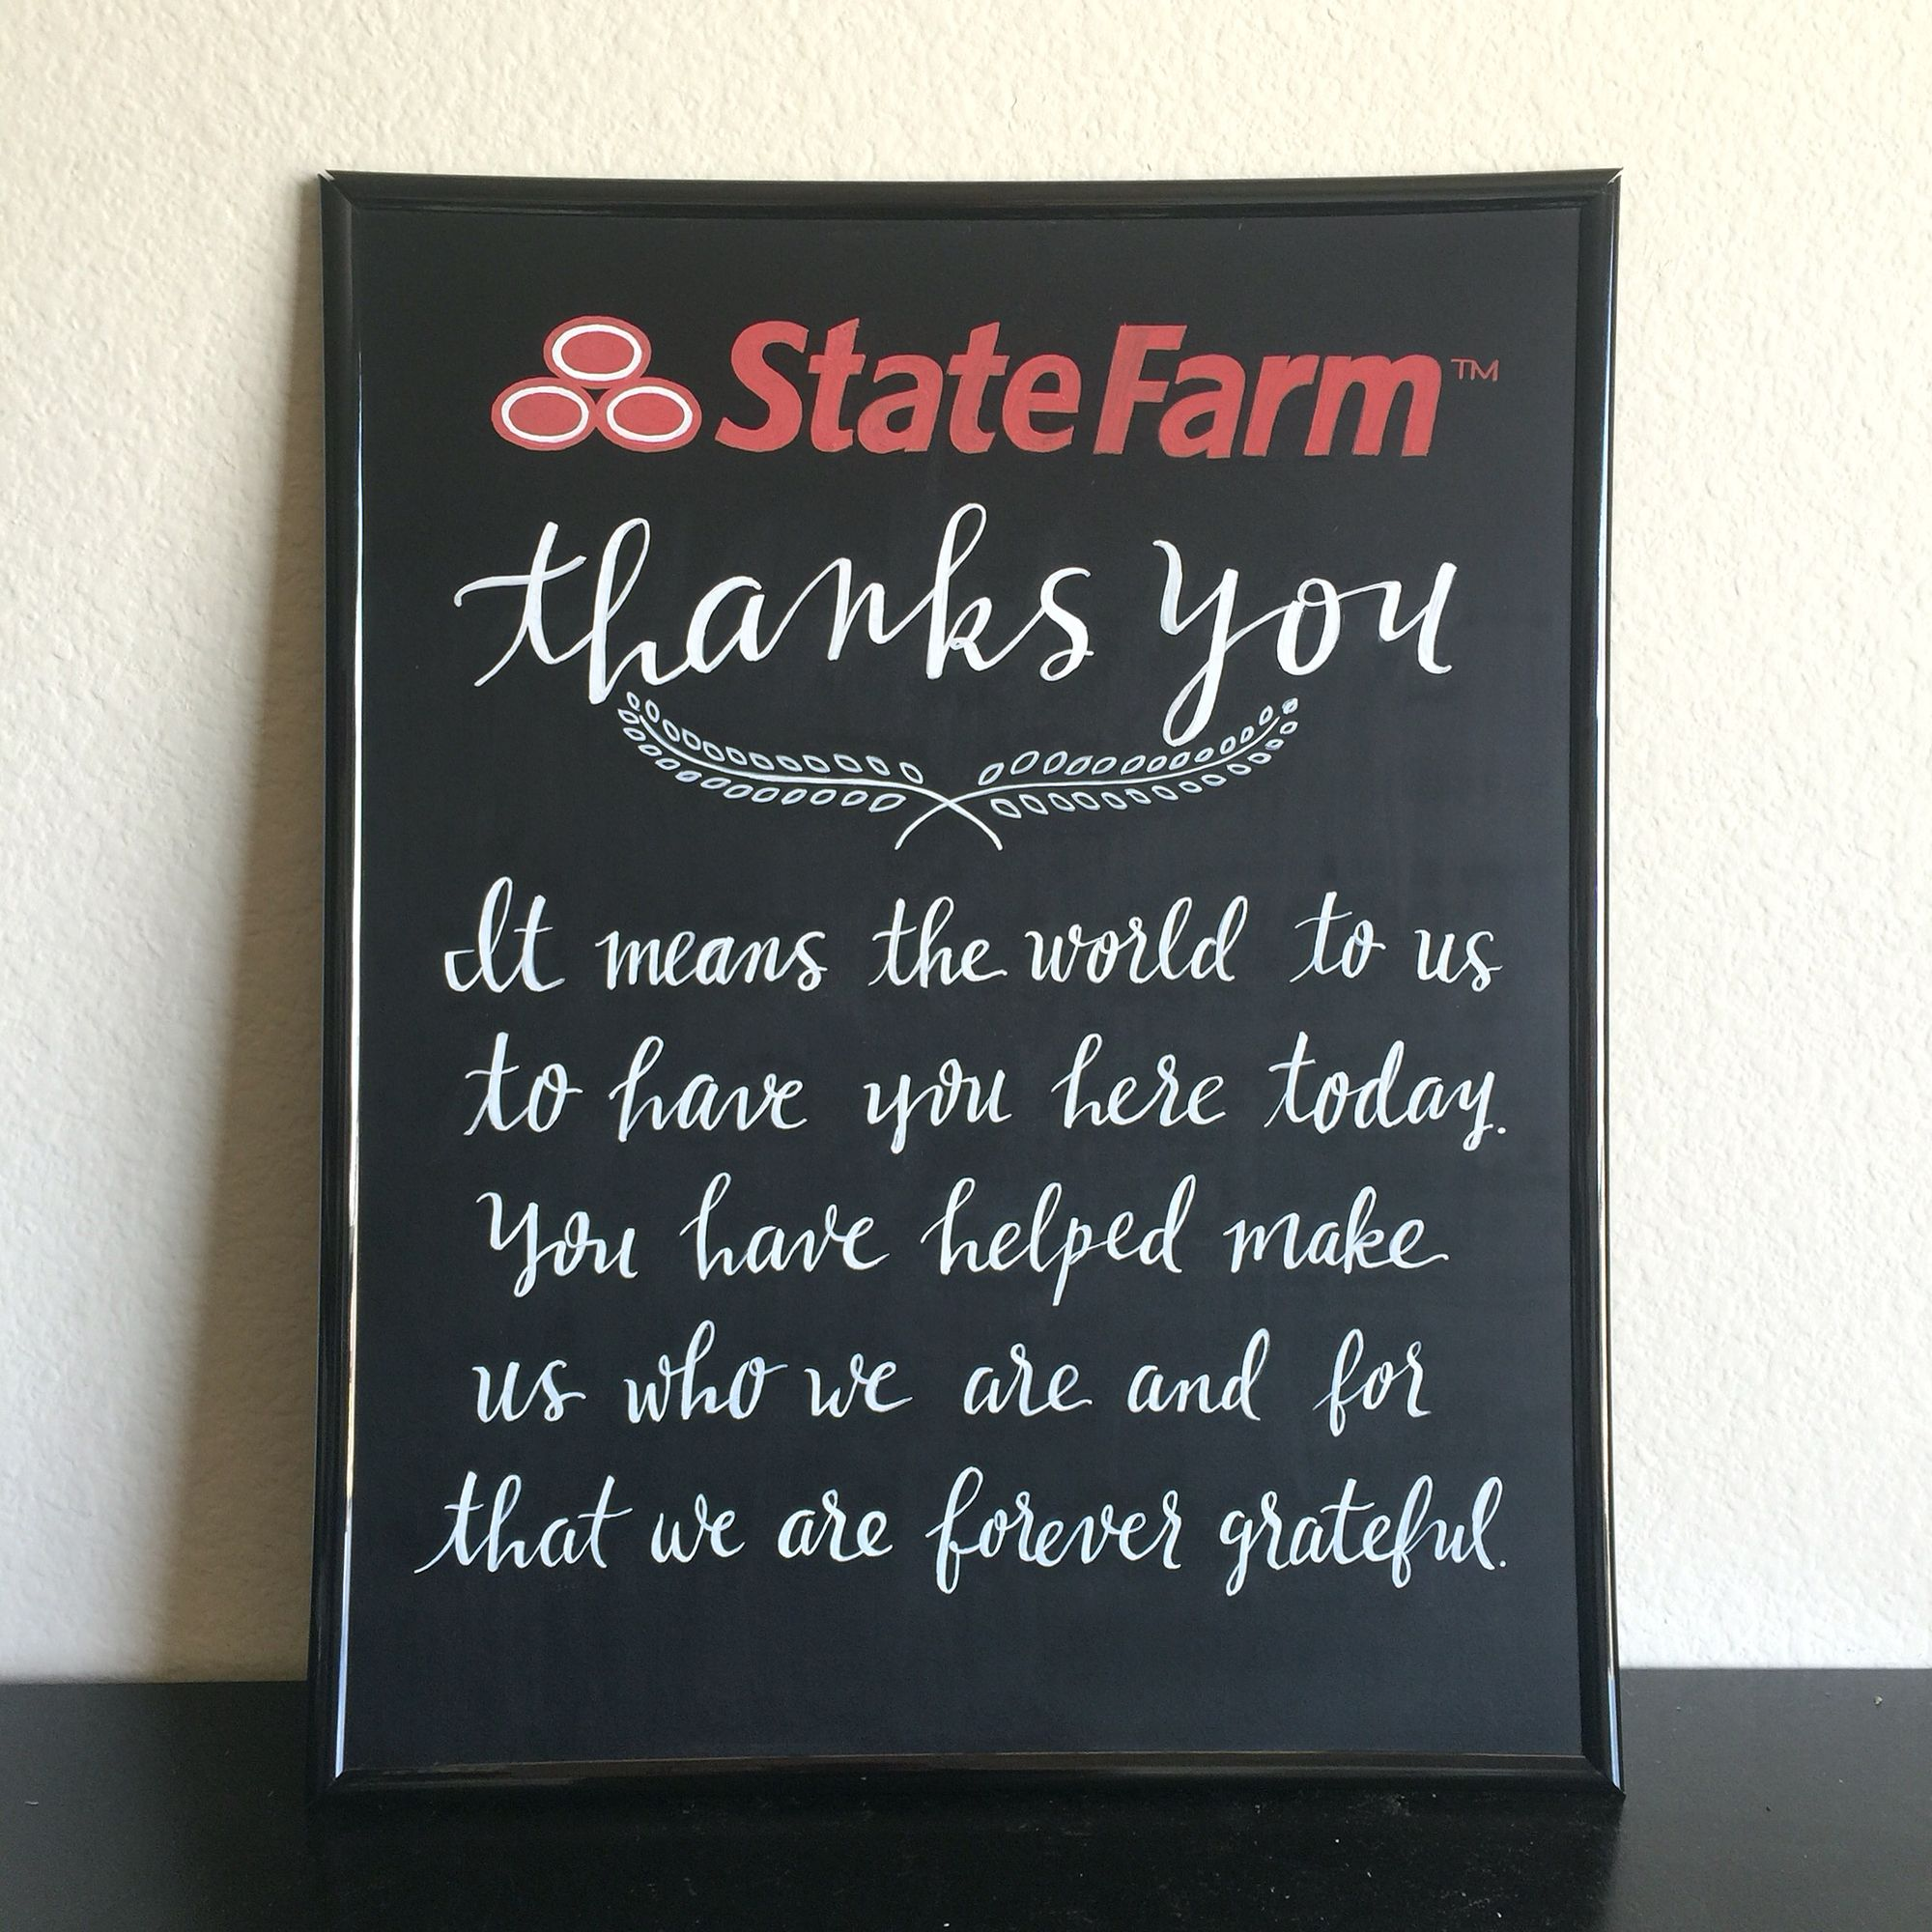 Customized Chalkboard Sign 16x20 for State Farm by